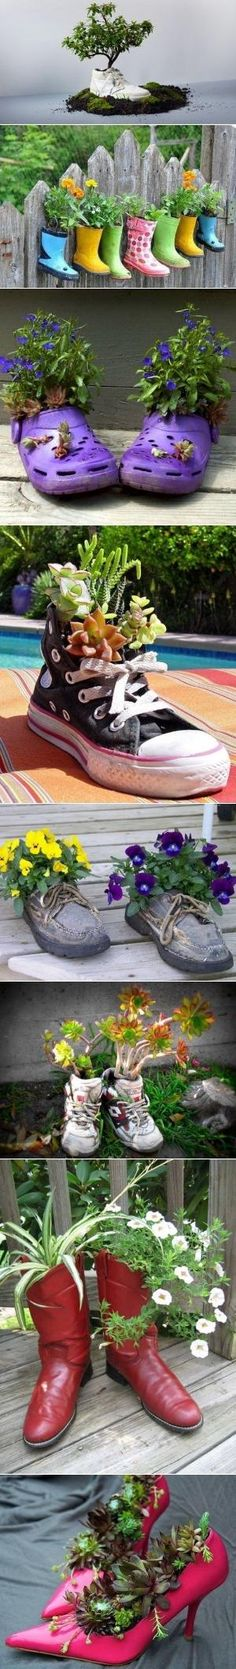 DIY Ideas To Use Old Shoes As Planters: by Emel